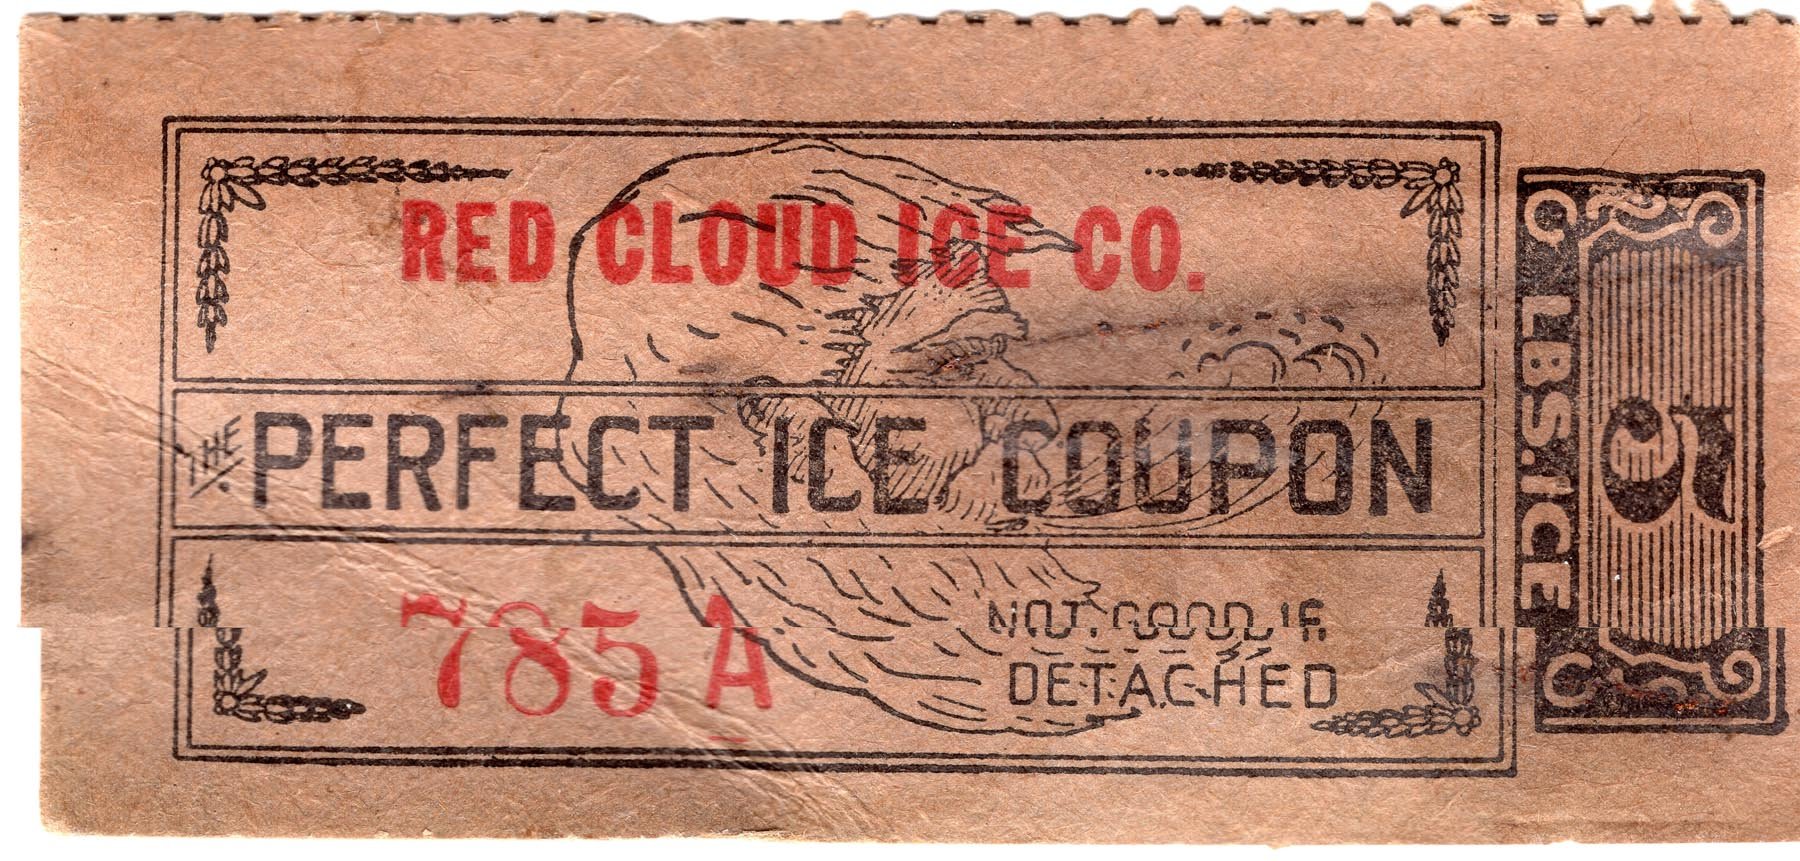 img217- Red Cloud Ice Co. Coupon for 5 lbs.